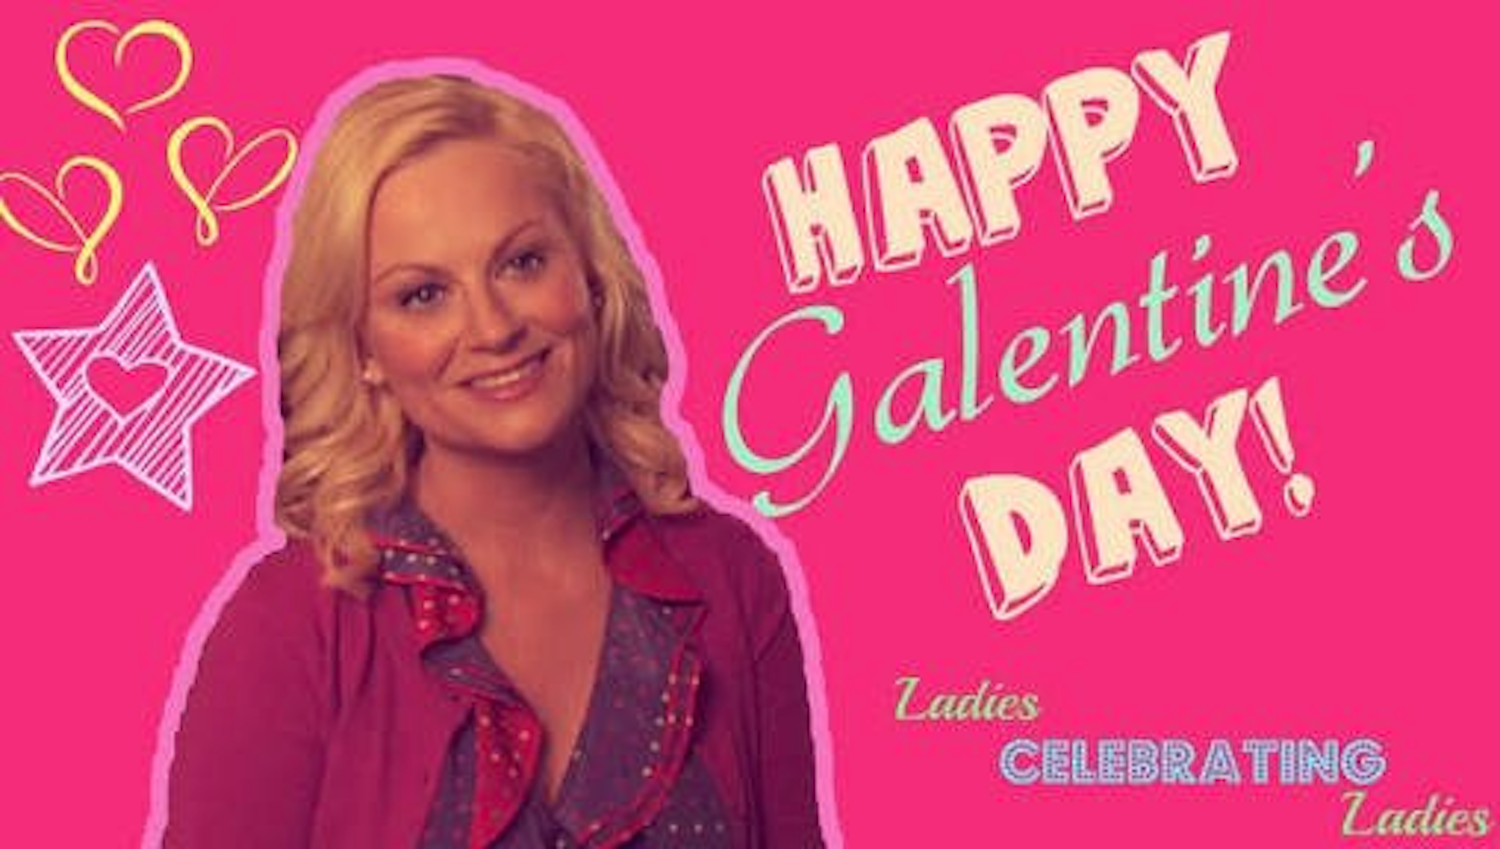 """Galentine's Day was created on the NBC show """"Parks and Recreation,"""" which ran a respectable seven season run from 2009 to 2015. In the 16th episode of the second season, Leslie Knope and her friends gather for brunch in celebration of Galentine's Day. (Screenshot courtesy of  Kris Howard's Twitter )"""